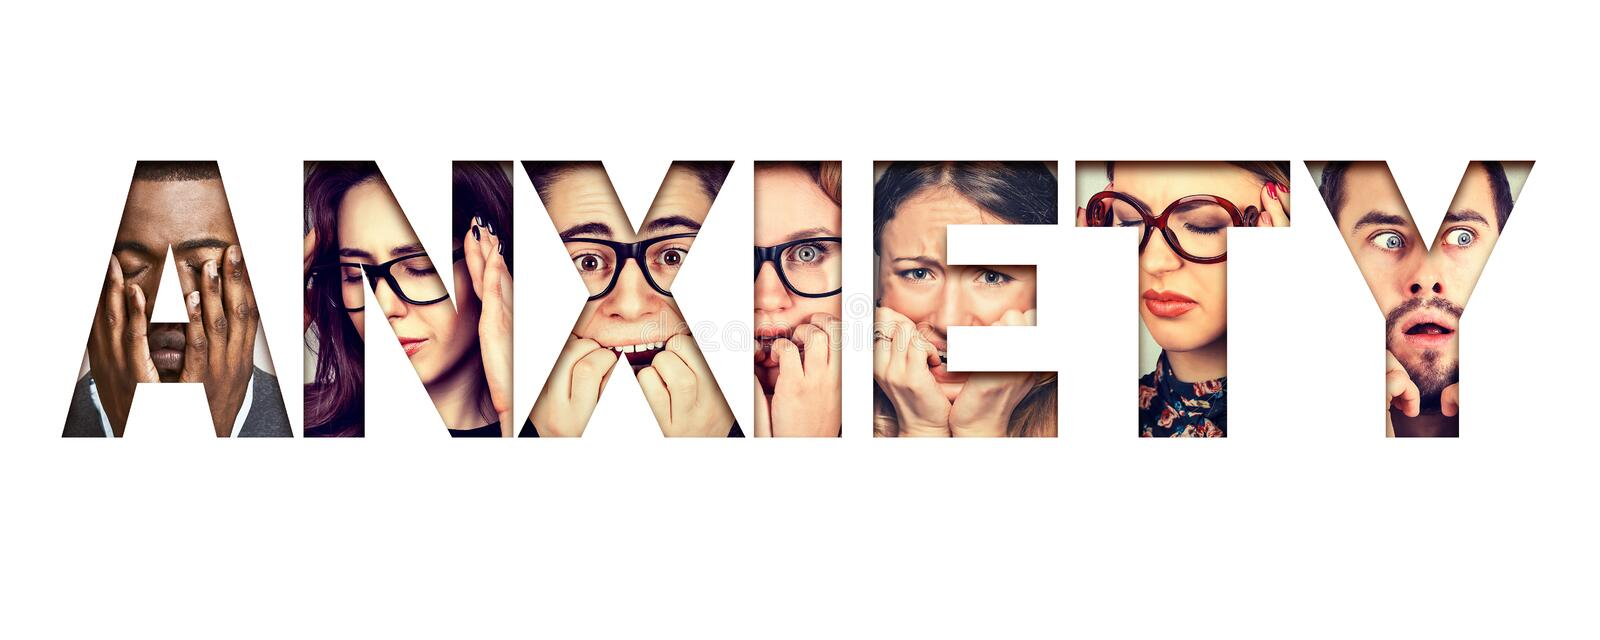 Word anxiety composed of anxious stressed faces of men and women stock photo